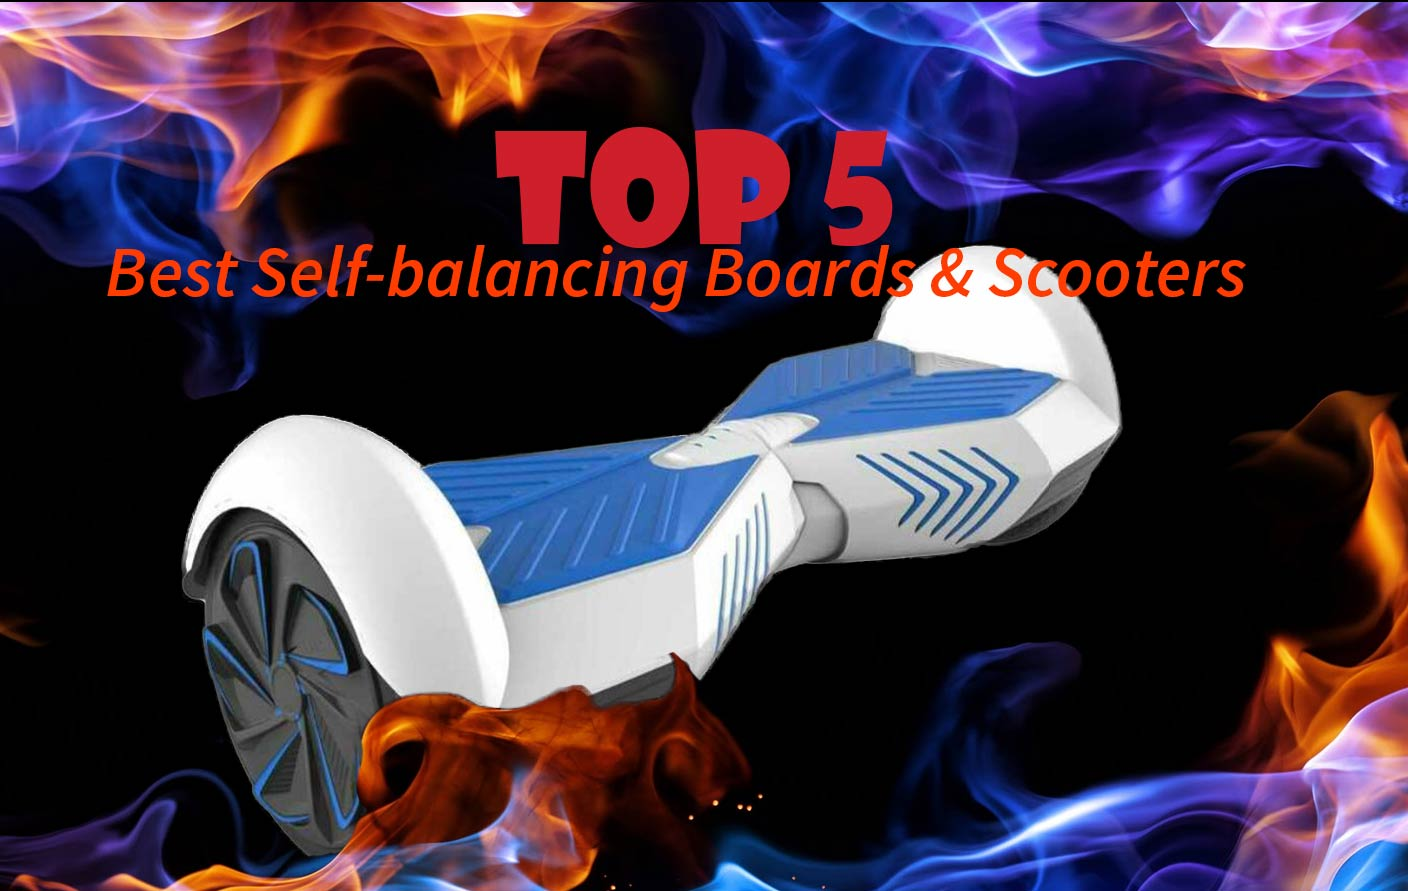 Best hoverboard & self-balancing scooter review of 2017